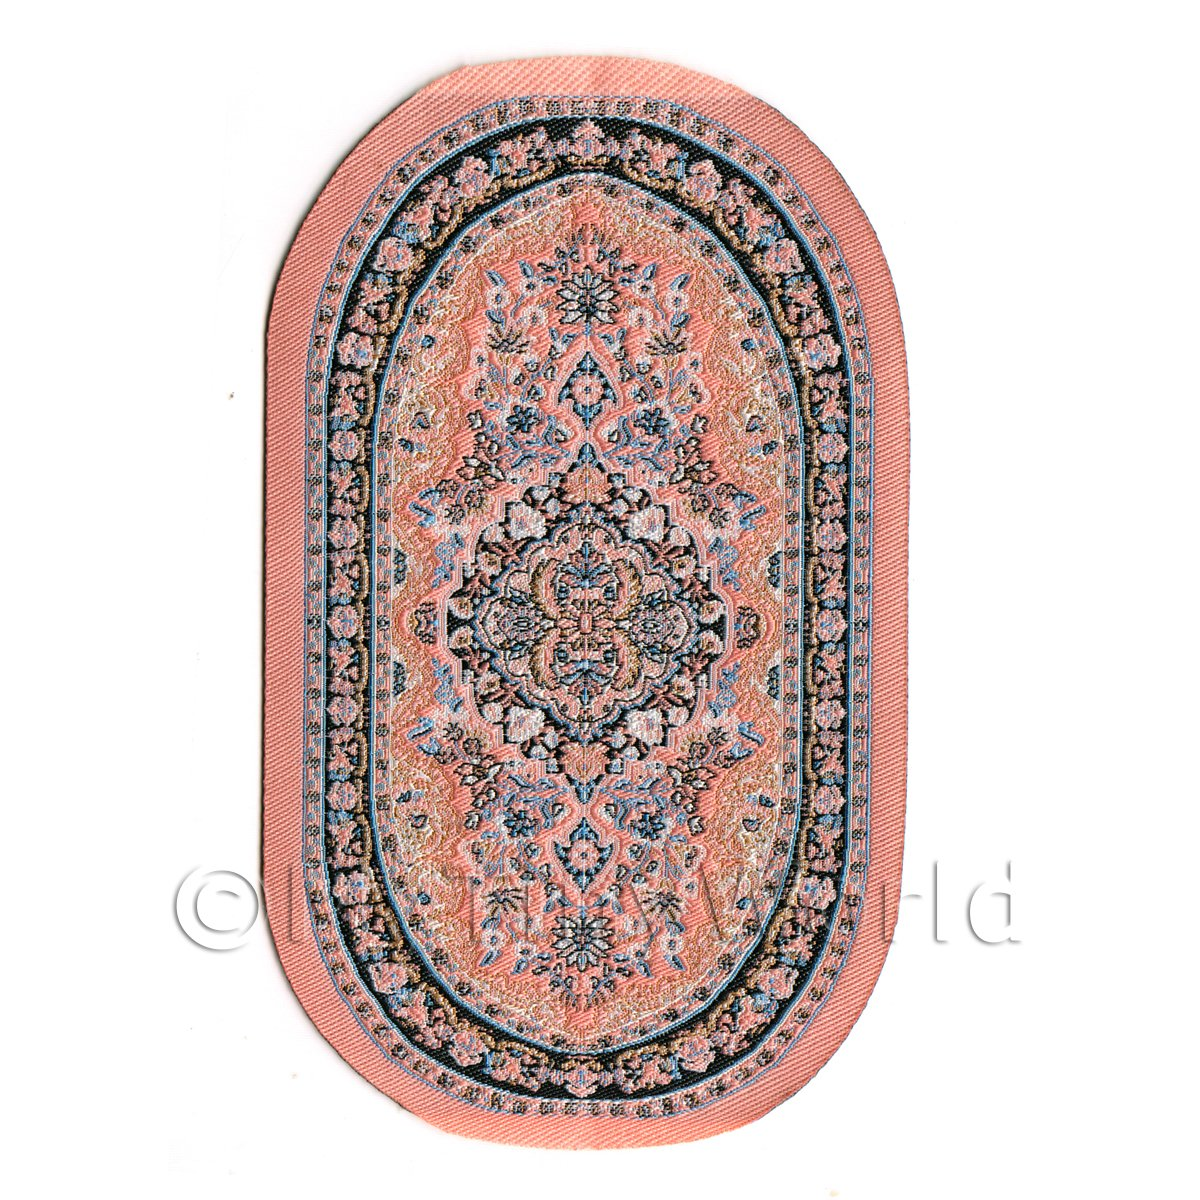 Dolls House Miniature 16th Century Small Oval Carpet / Rug (16NSO01)